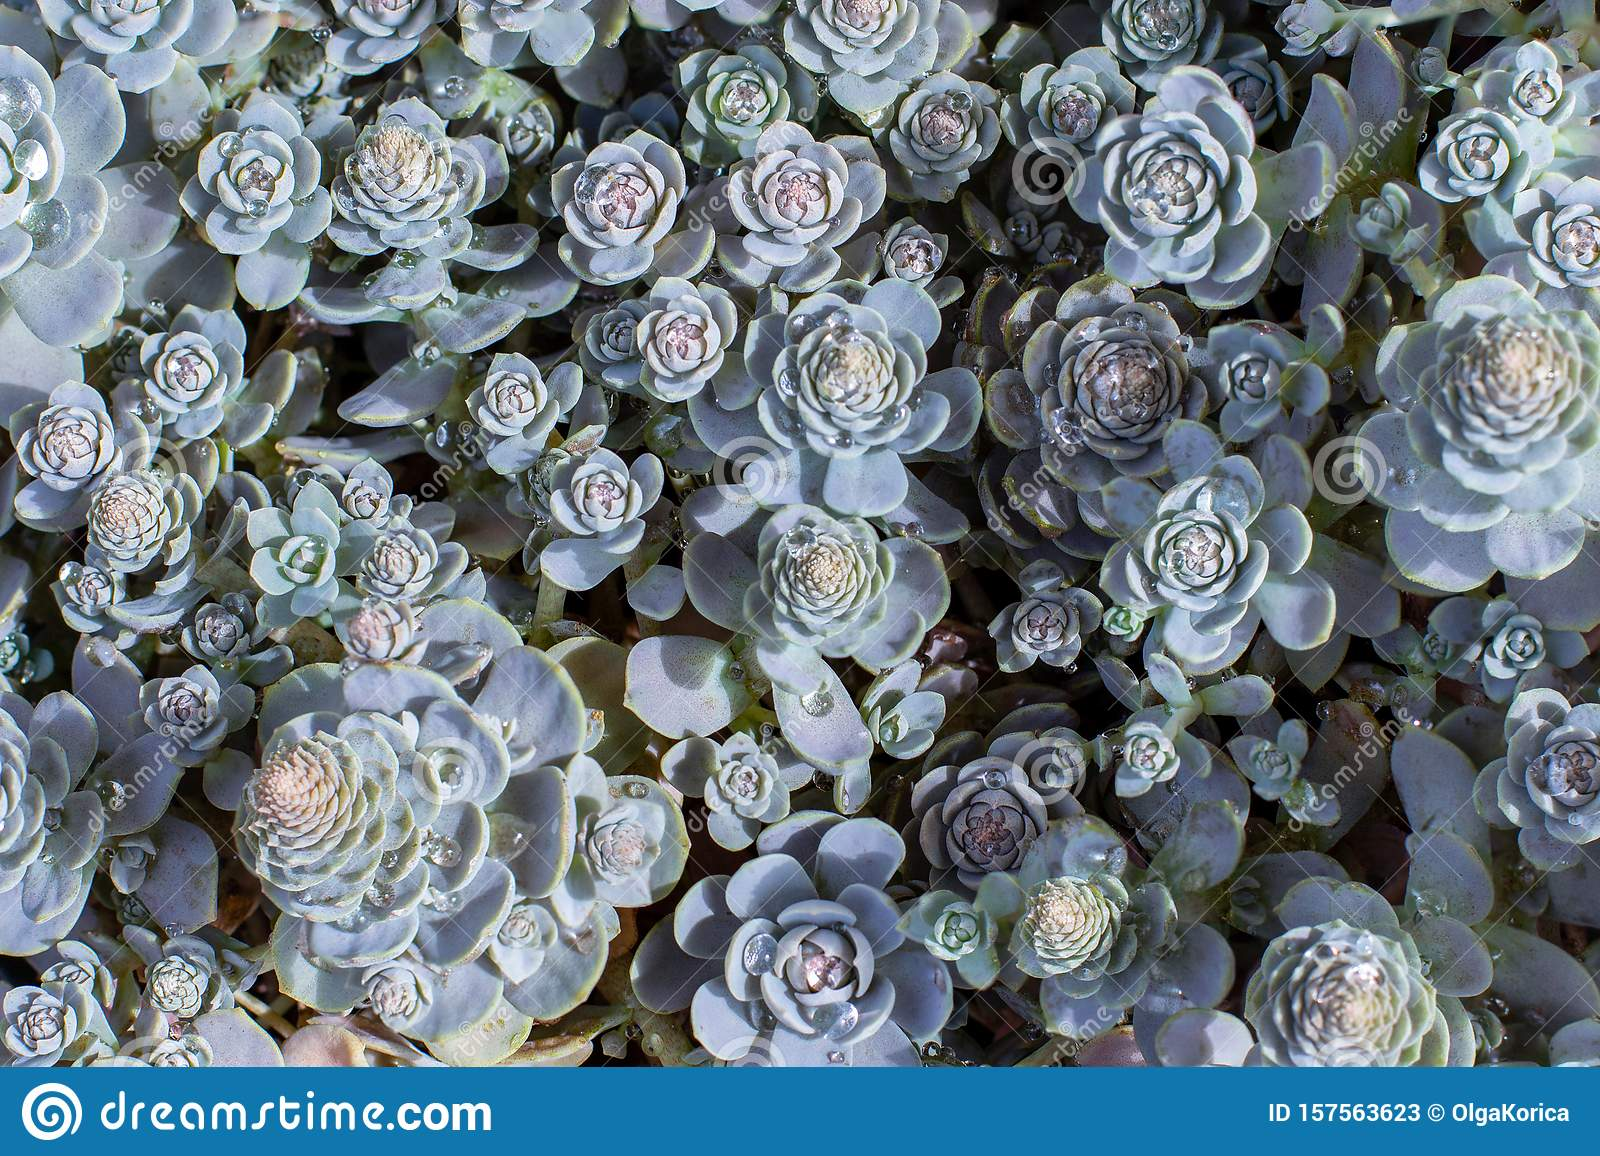 10 560 Succulent Wallpaper Photos Free Royalty Free Stock Photos From Dreamstime